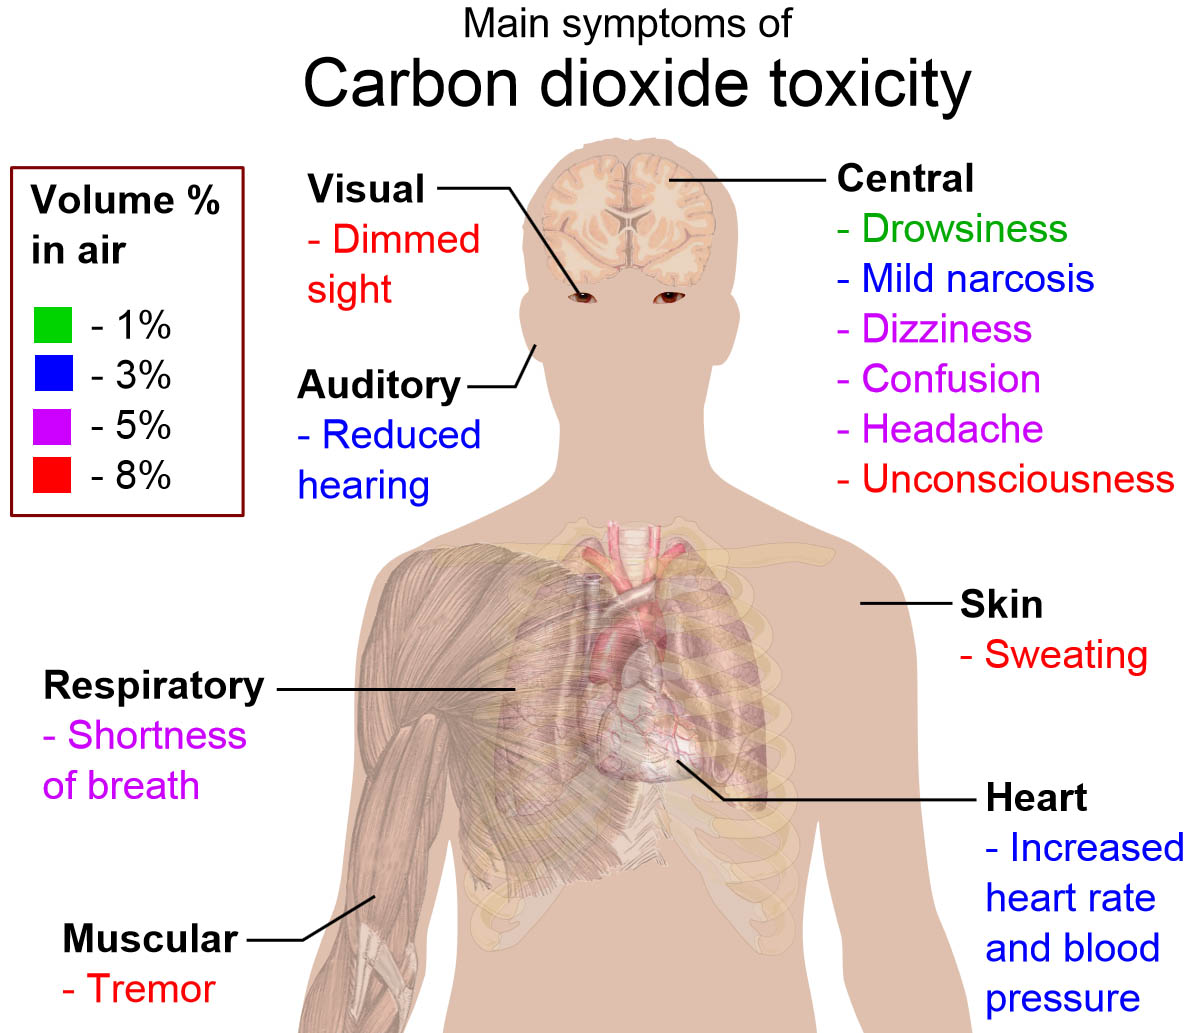 Carbon dioxide toxicity can cause many different symptoms